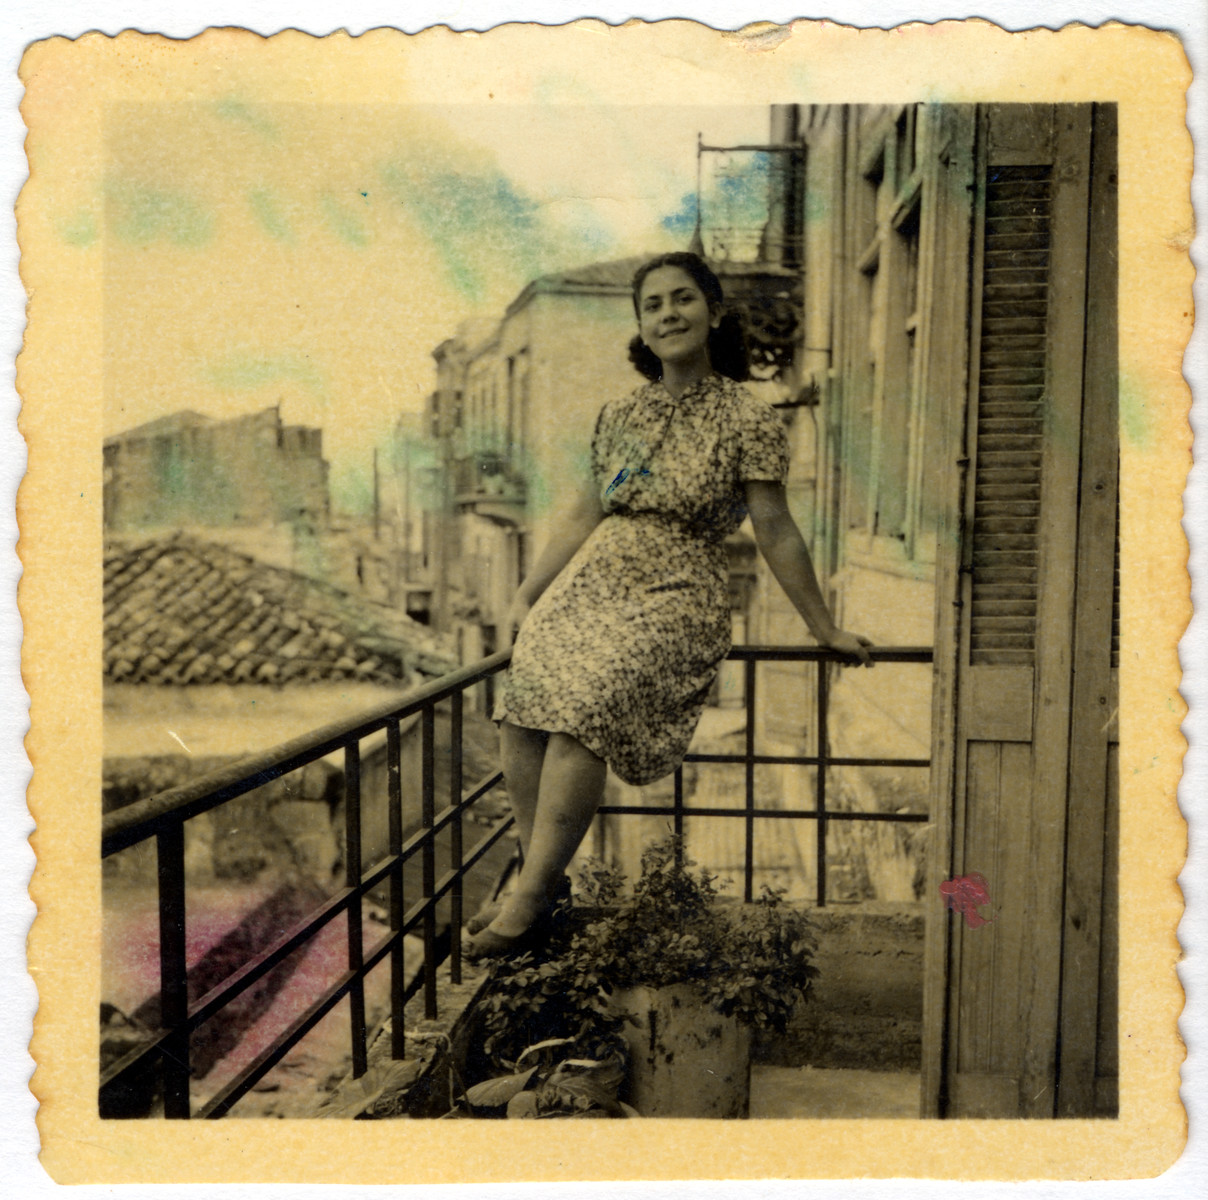 A young woman sits on a balcony railing.  Pictured is Chrissoula Elhai (?), sister of Jacob Elhai.